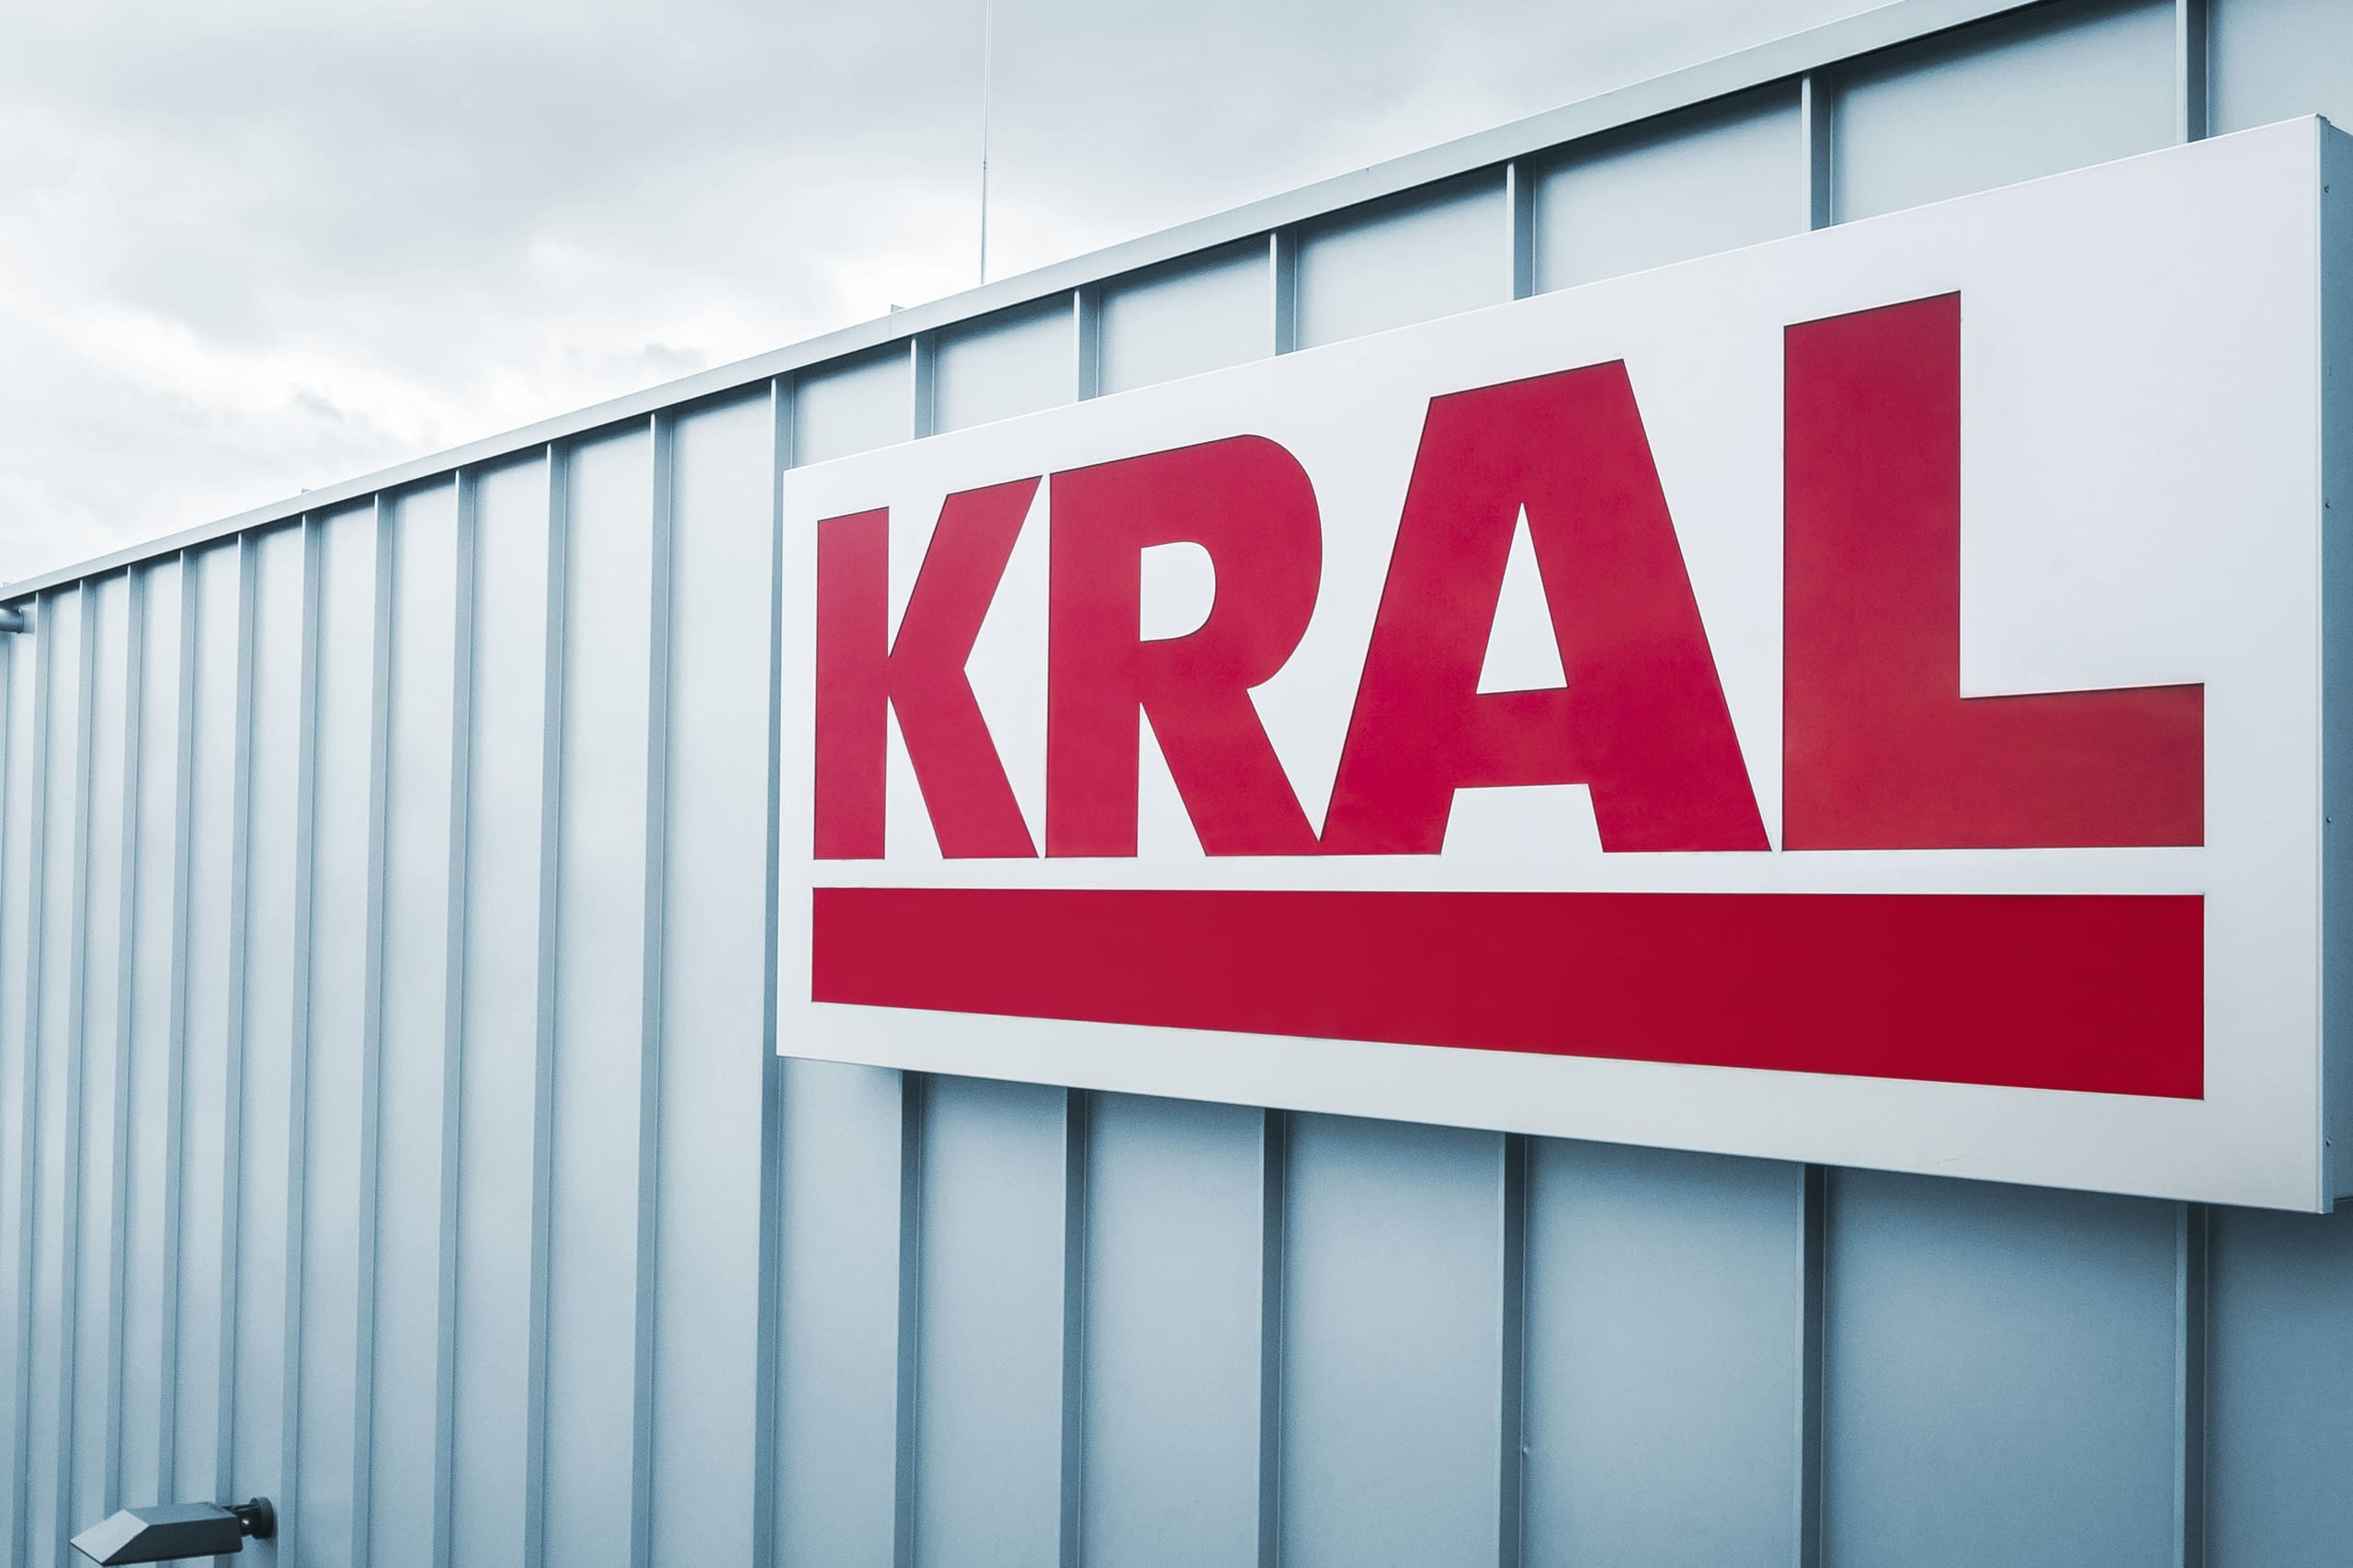 service for screw Pumps/flow measurement feedback about us satisfaction kral big and red letters